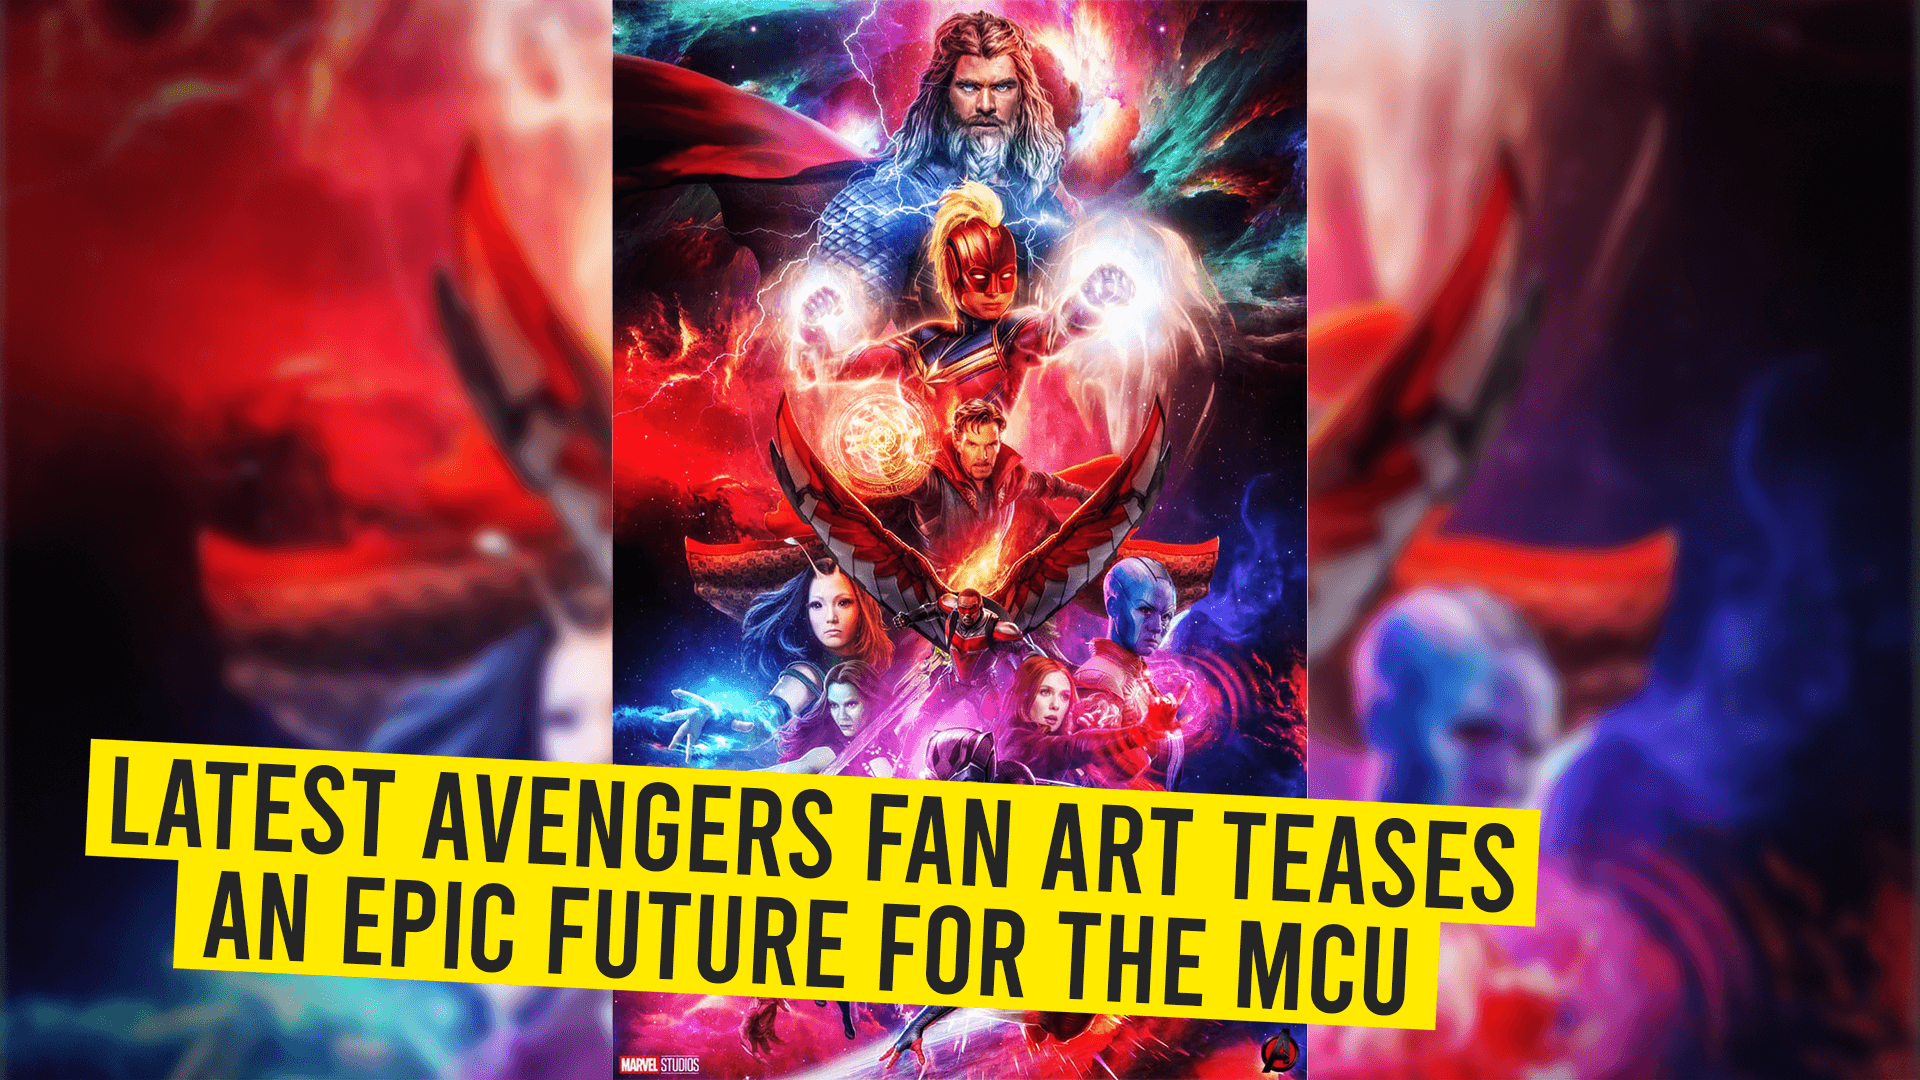 Latest Avengers Fan Art Teases an Epic Future for the MCU